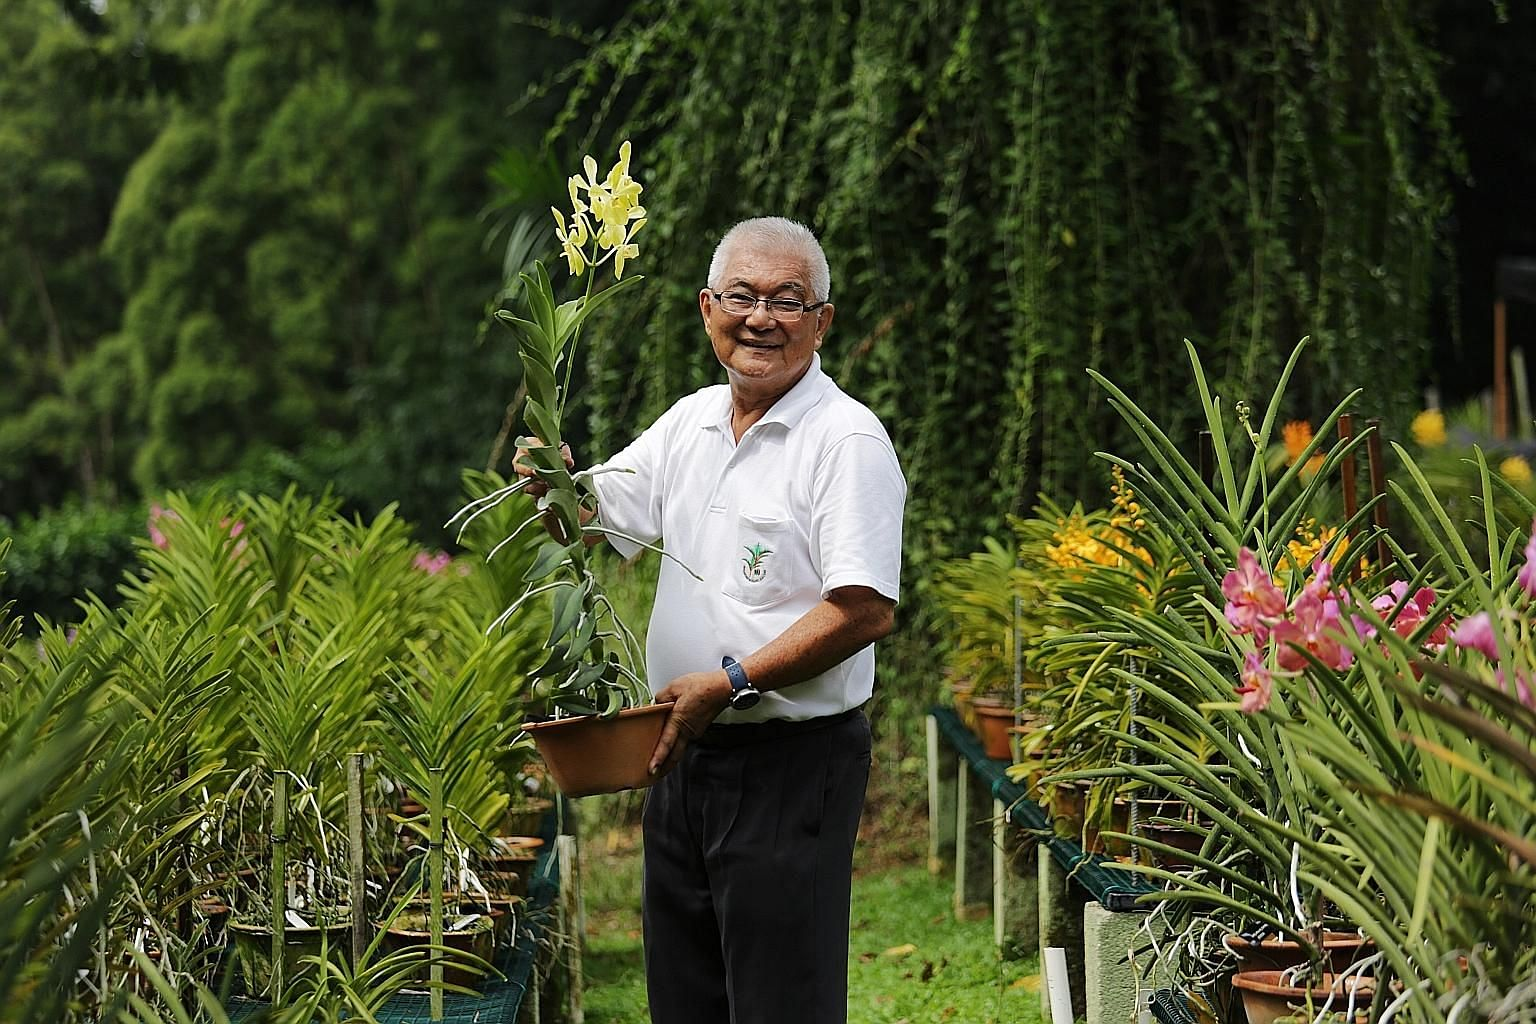 Mr David Lim was a distinguished orchid breeder and grower whose most well-known hybrids include the Aranda Lee Kuan Yew orchid.